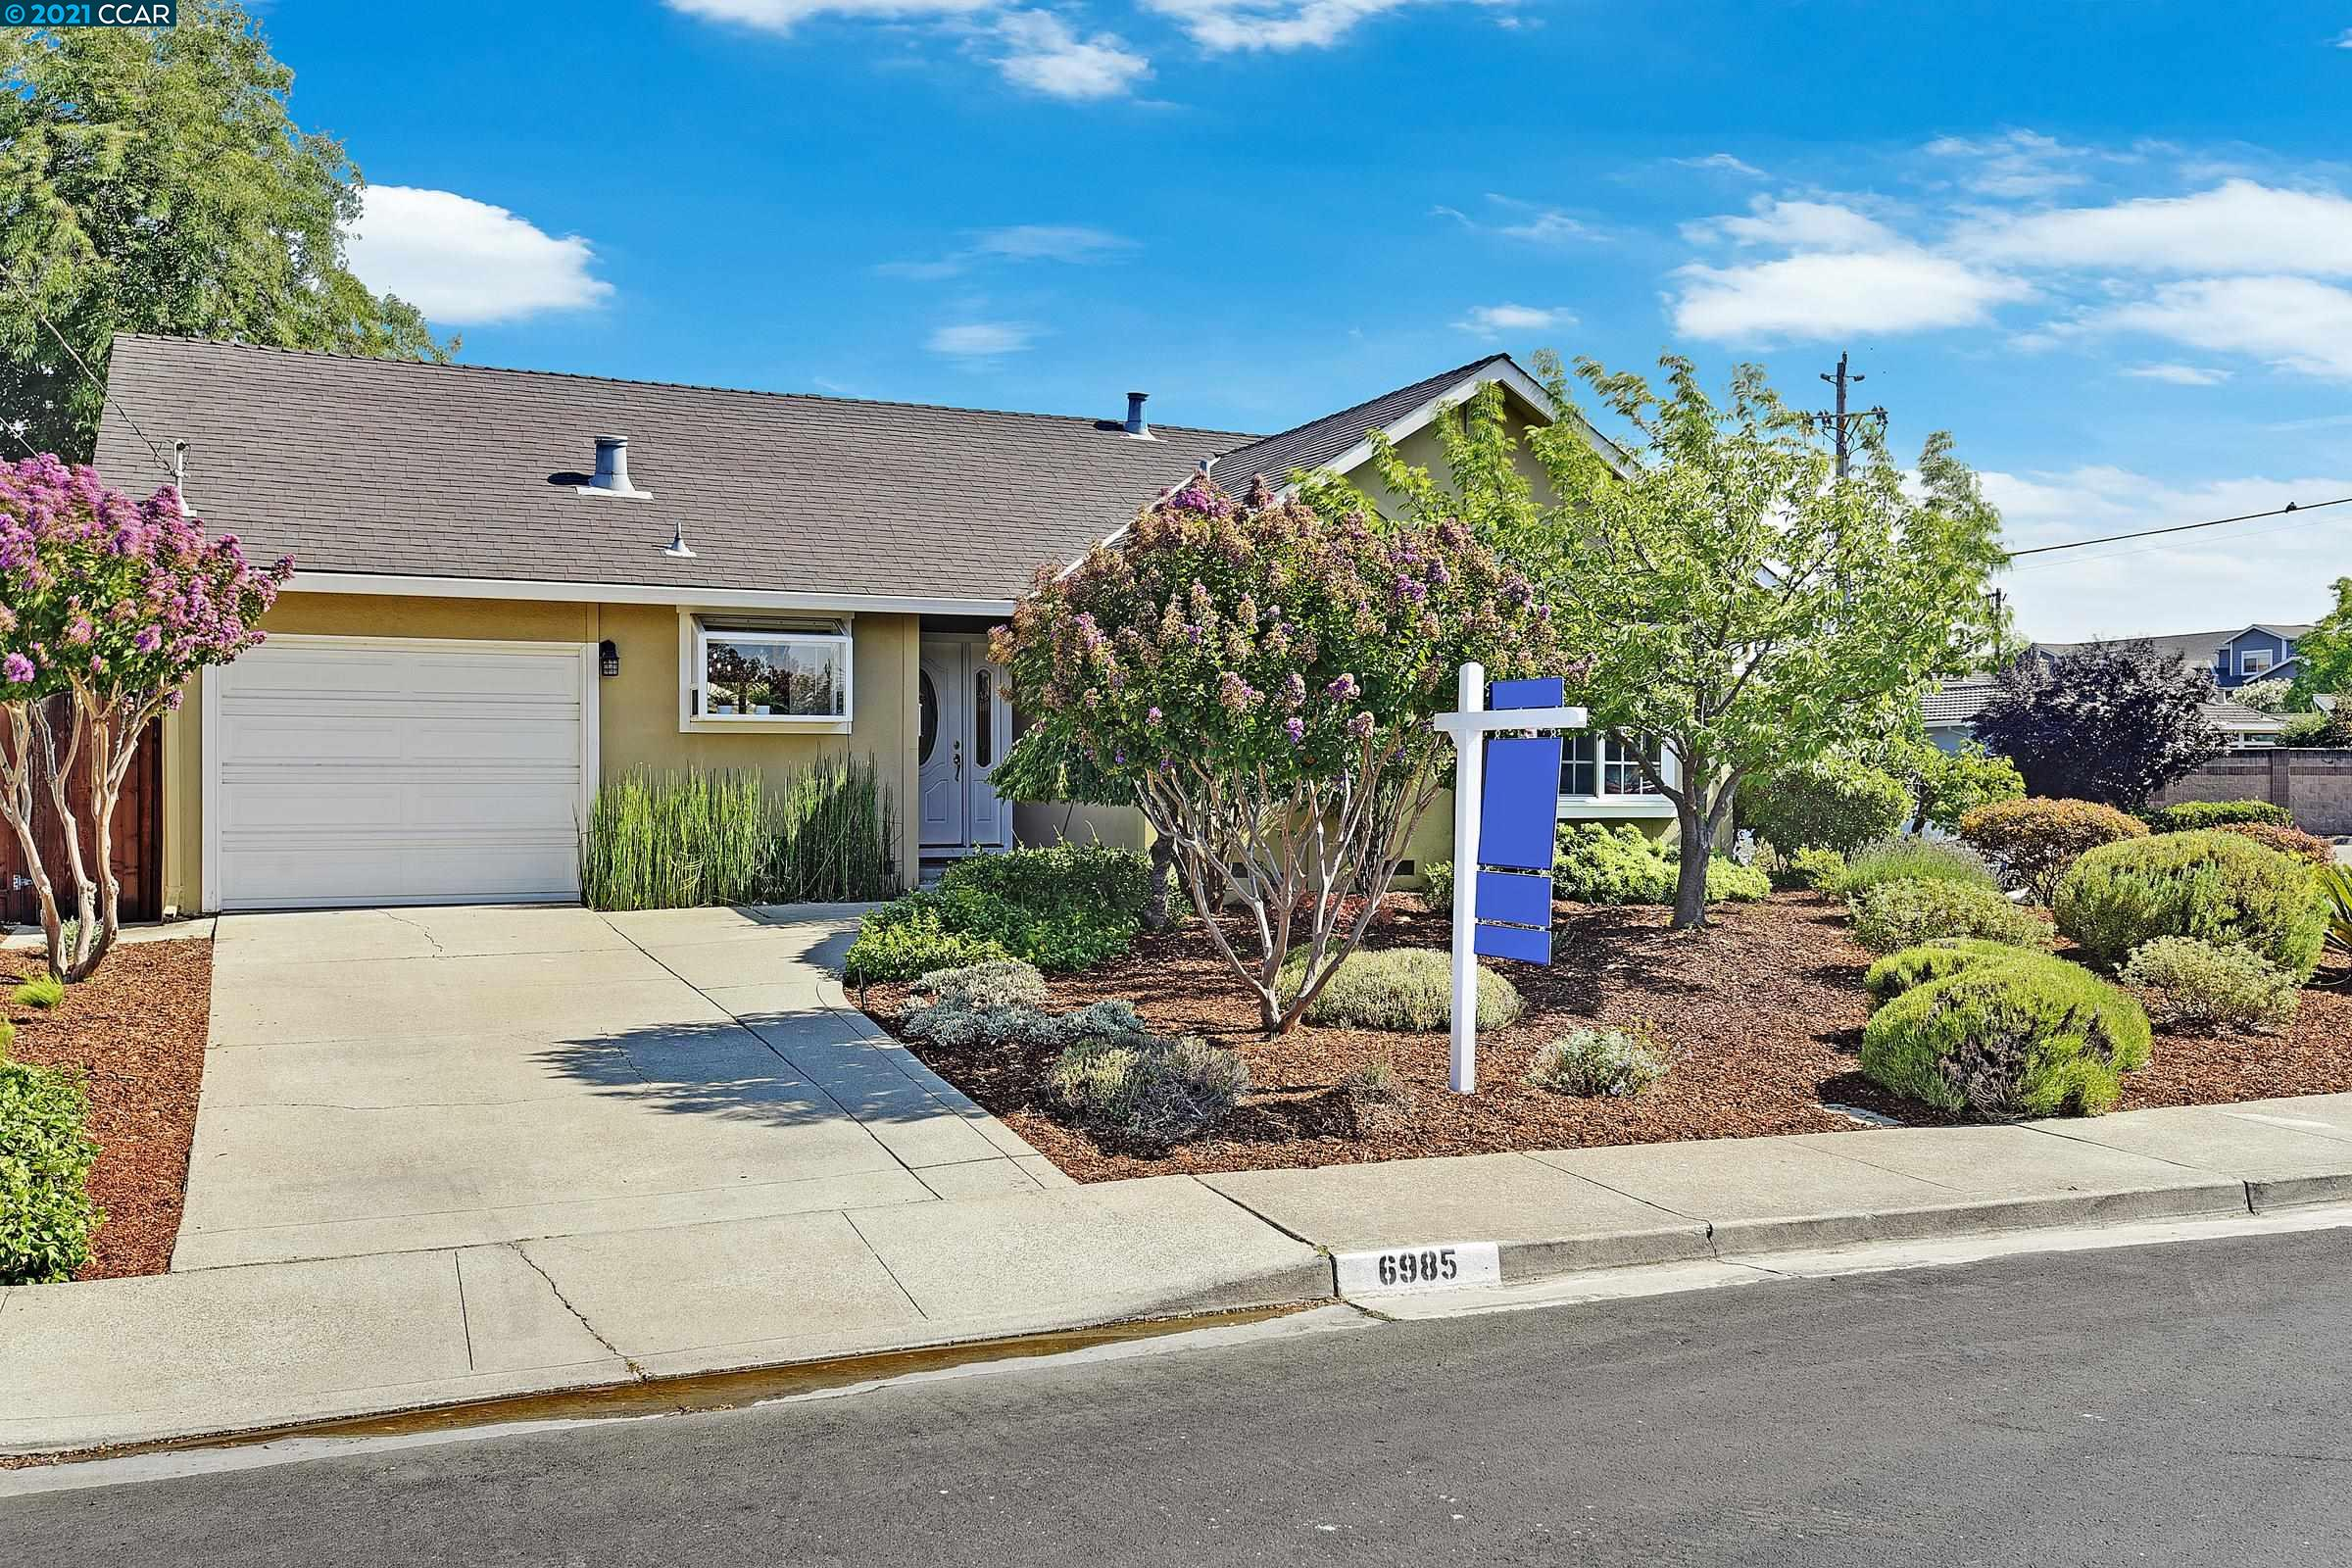 Open Sat. & Sun. 1-4pm!  Charming single level home completely updated on desirable corner location in Sunny Glen, 55+ Active Adult Community, close to clubhouse, shopping center, and San Ramon Golf Club. Meticulously landscaped yard with amazing curb appeal greets you as you arrive at this lovely single family home. Family room features new carpeting, cozy wood burning fireplace with tile surround, and wood mantle. Enjoy picturesque views out to backyard oasis. Newly remodeled kitchen features breakfast bar, quartz countertops and backsplash, white cabinets, and all new appliances.  Spacious dining area adjoins kitchen and includes triple sliding glass door access out to back patio. Master bedroom features white wood paneling, walk-in closet, and views to front garden.  Gorgeous master bath boasts marble tile. quartz countertops,  and walk-in shower.   Come enjoy this great home in an active adult community with swimming pool, bocce, clubhouse and organized activities!